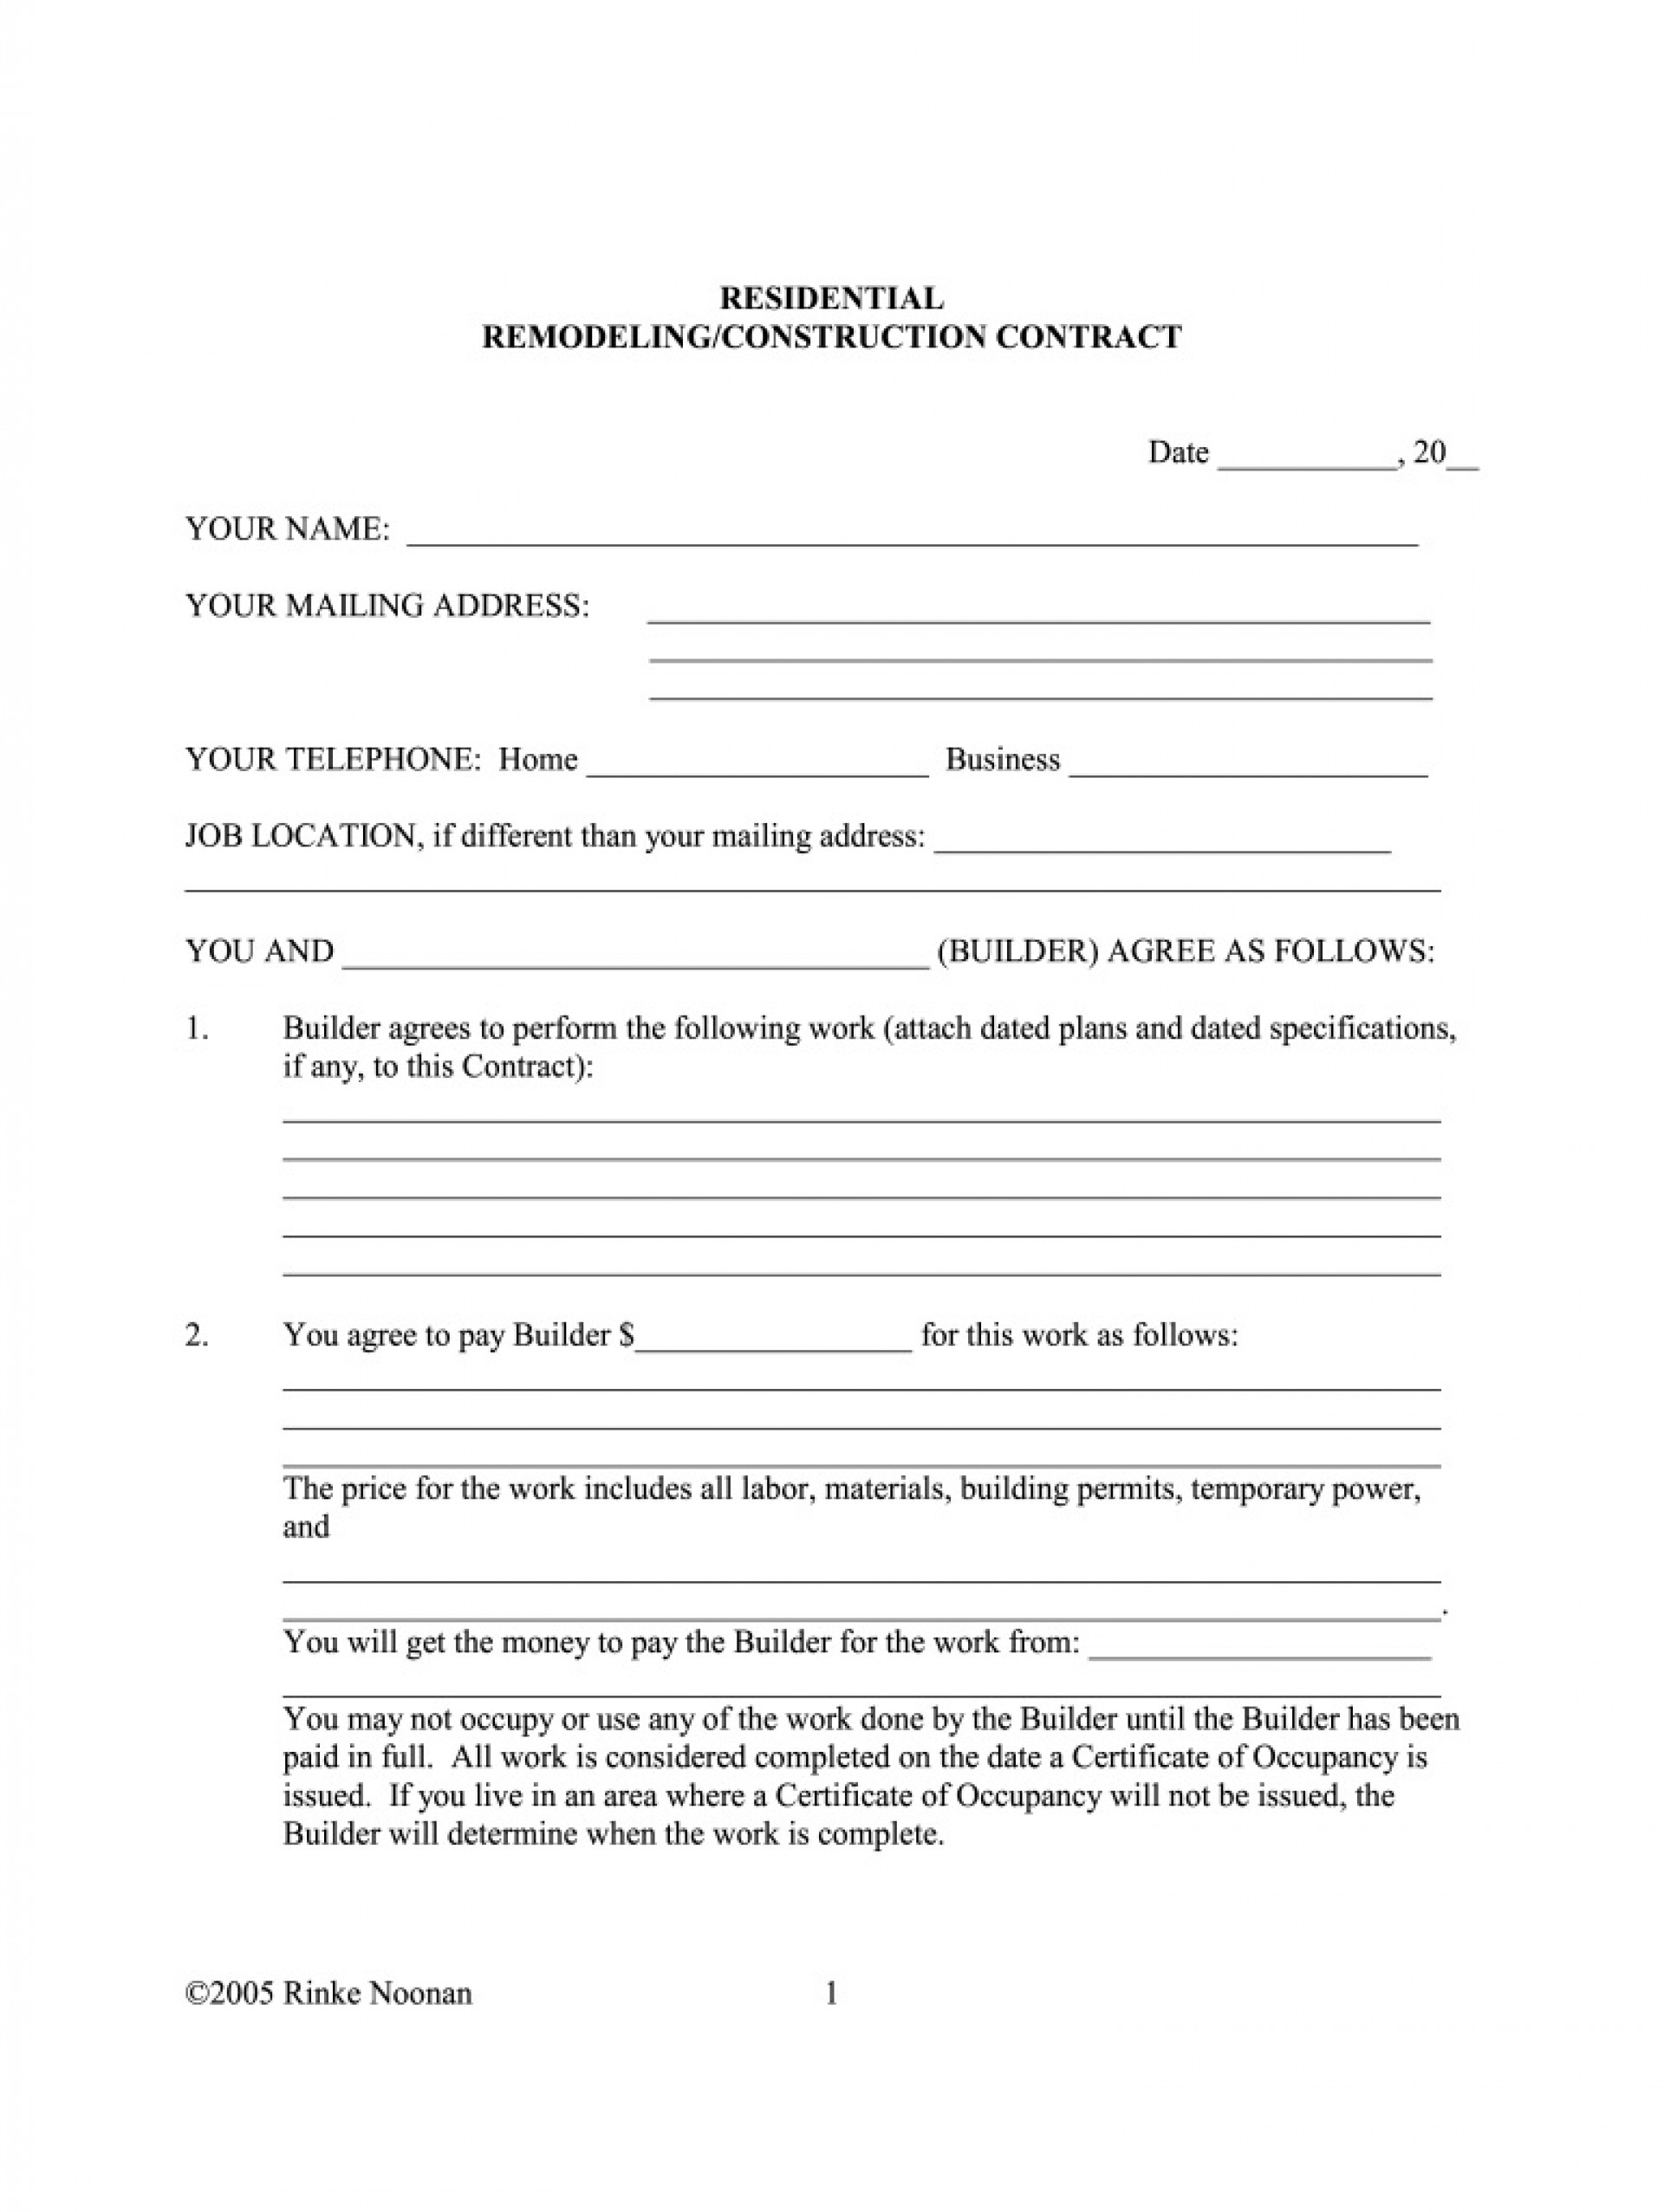 005 Fearsome Residential Construction Contract Template Example  House Agreement Pdf1920